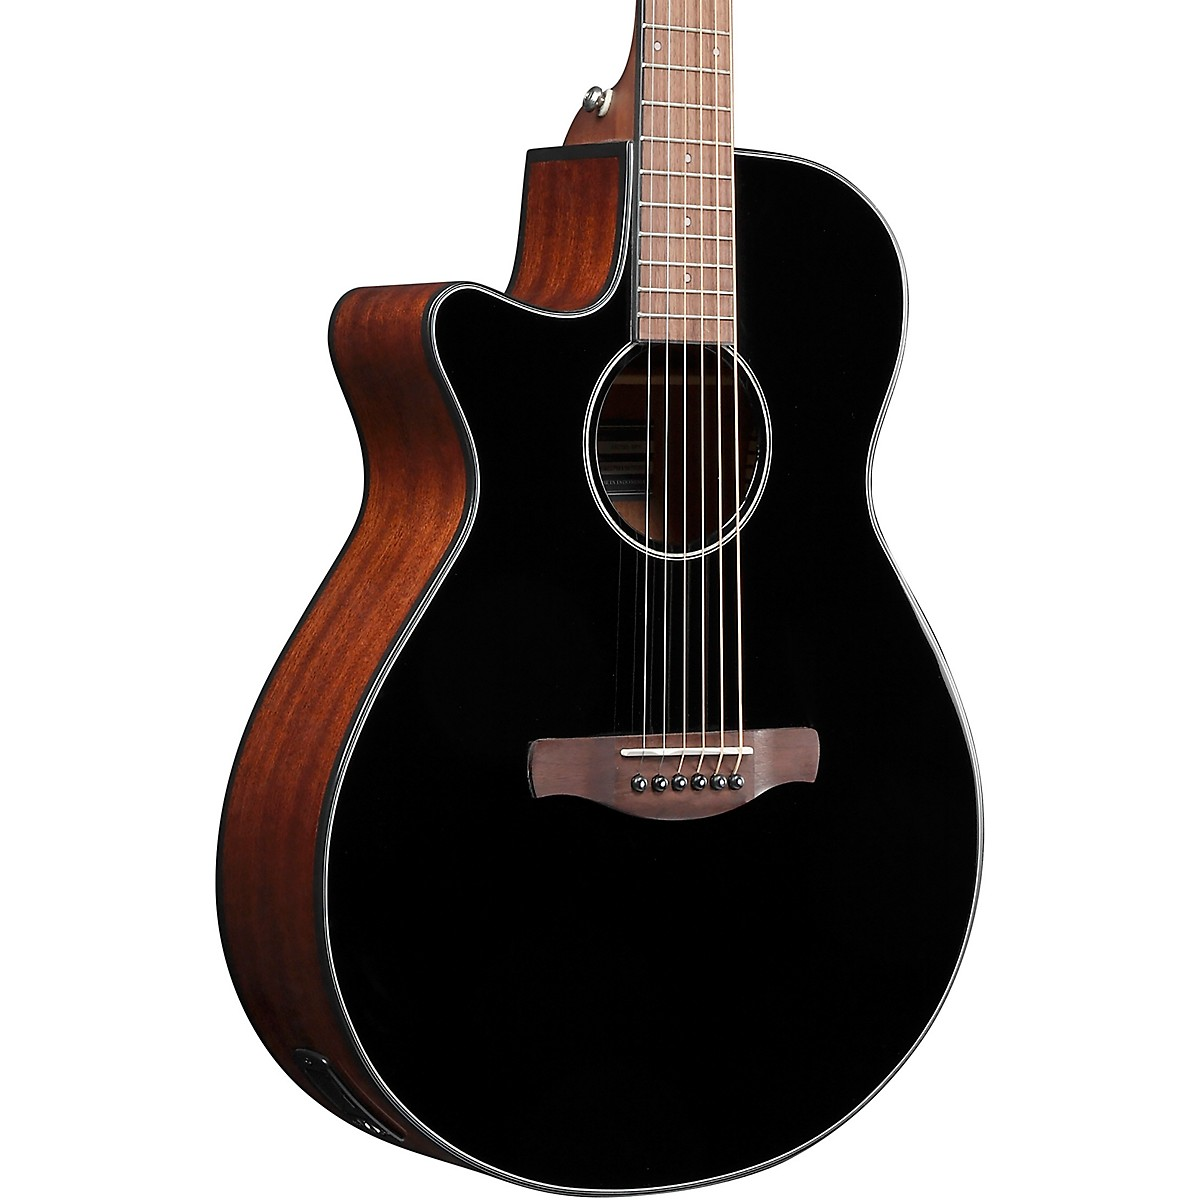 Ibanez AEG50L Grand Concert Acoustic-Electric Guitar